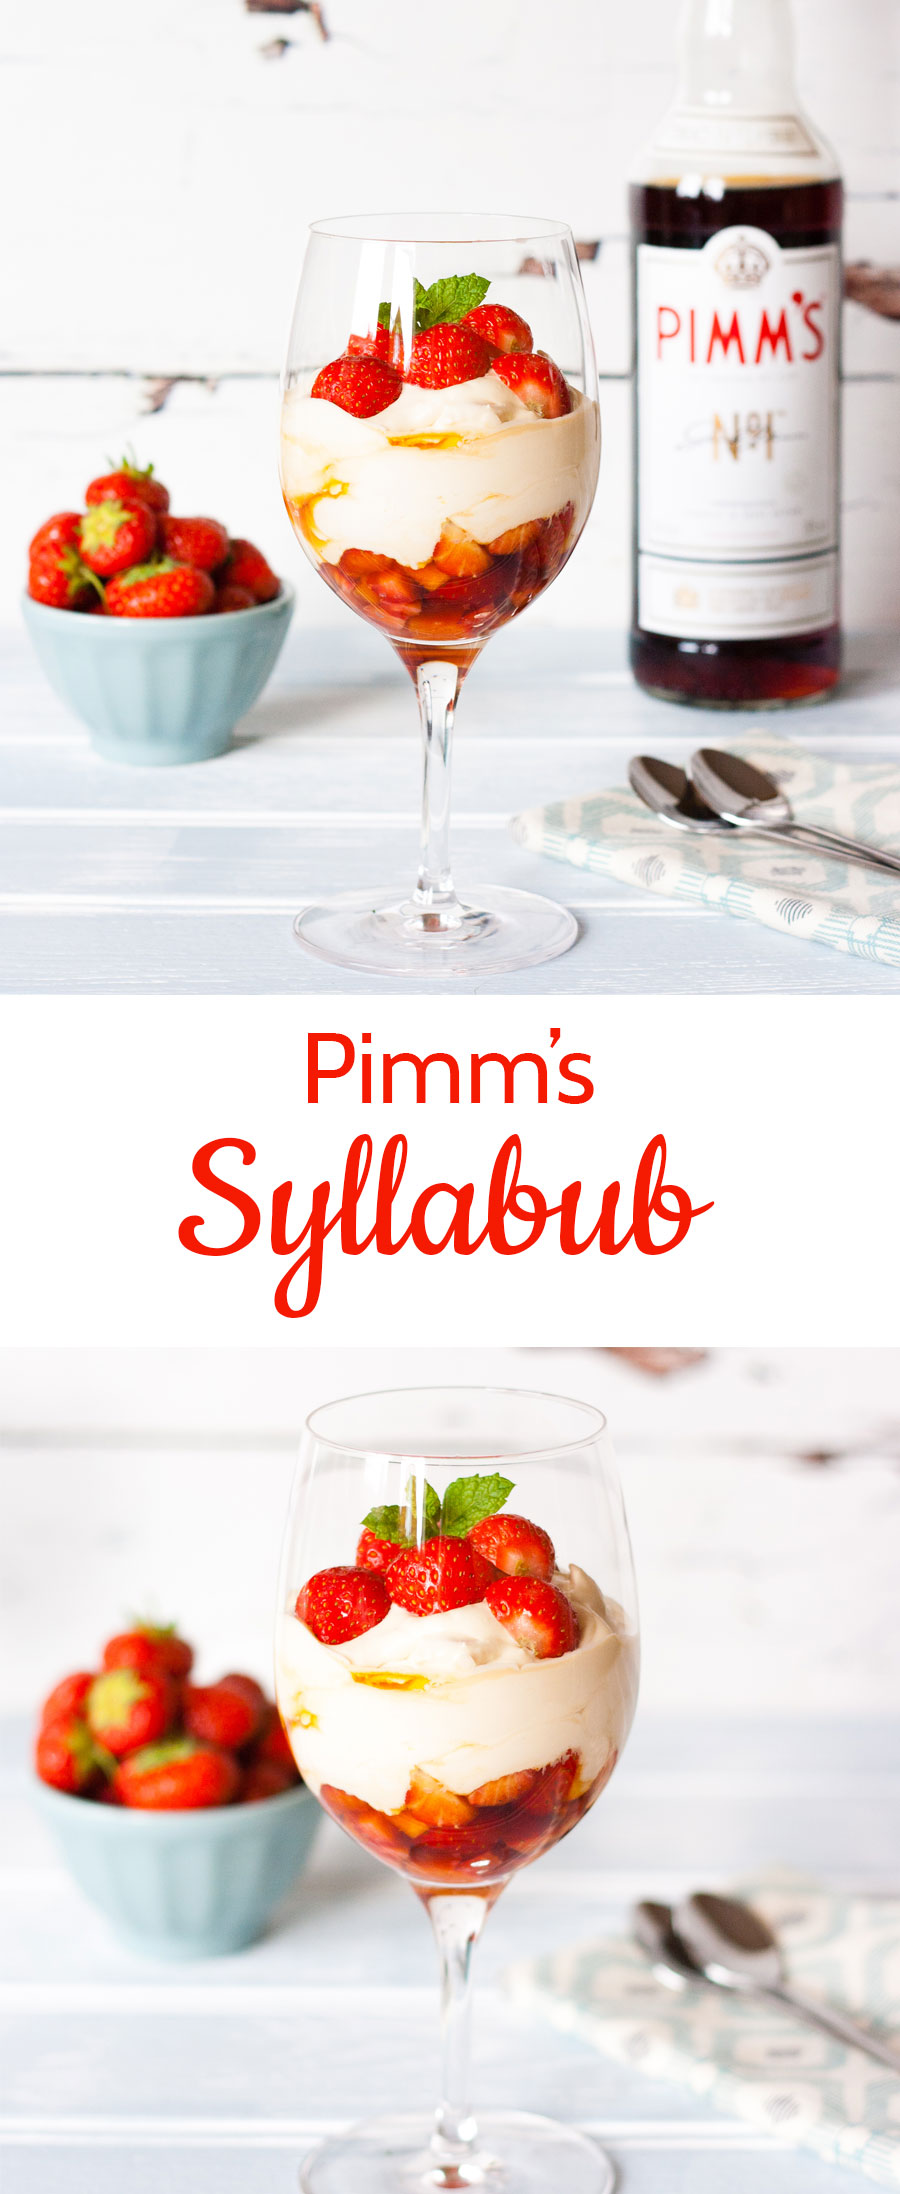 A glass of Pimm's and lemonade epitomises the English countryside. As well as being delicious in drinks try using Pimm's in a dessert - like this quick and easy boozy Pimm's & strawberry syllabub